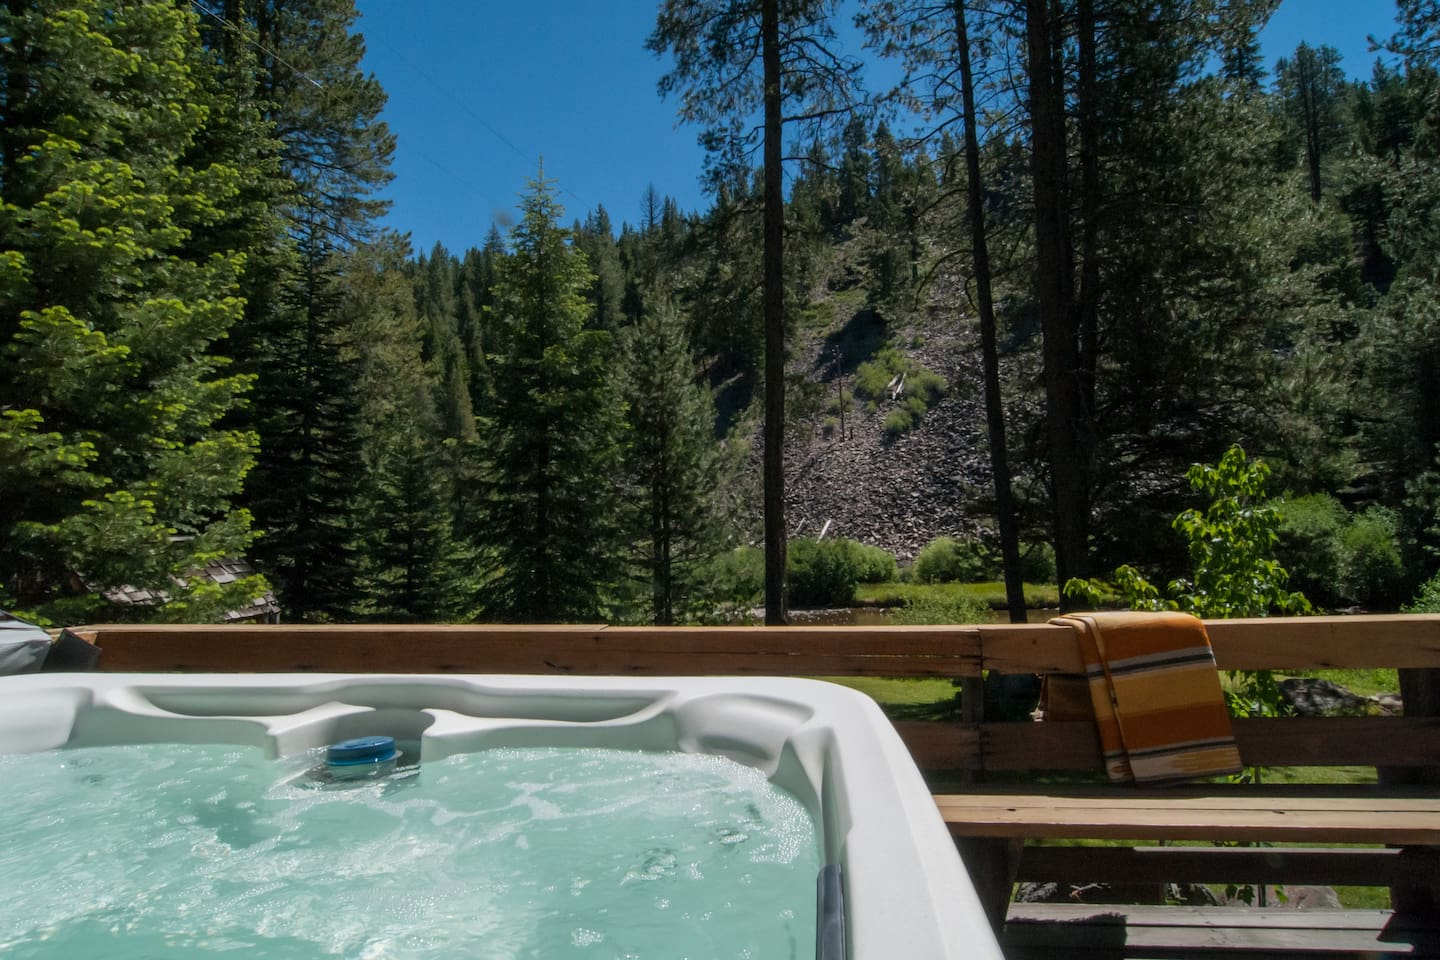 Hot tub over looking river.